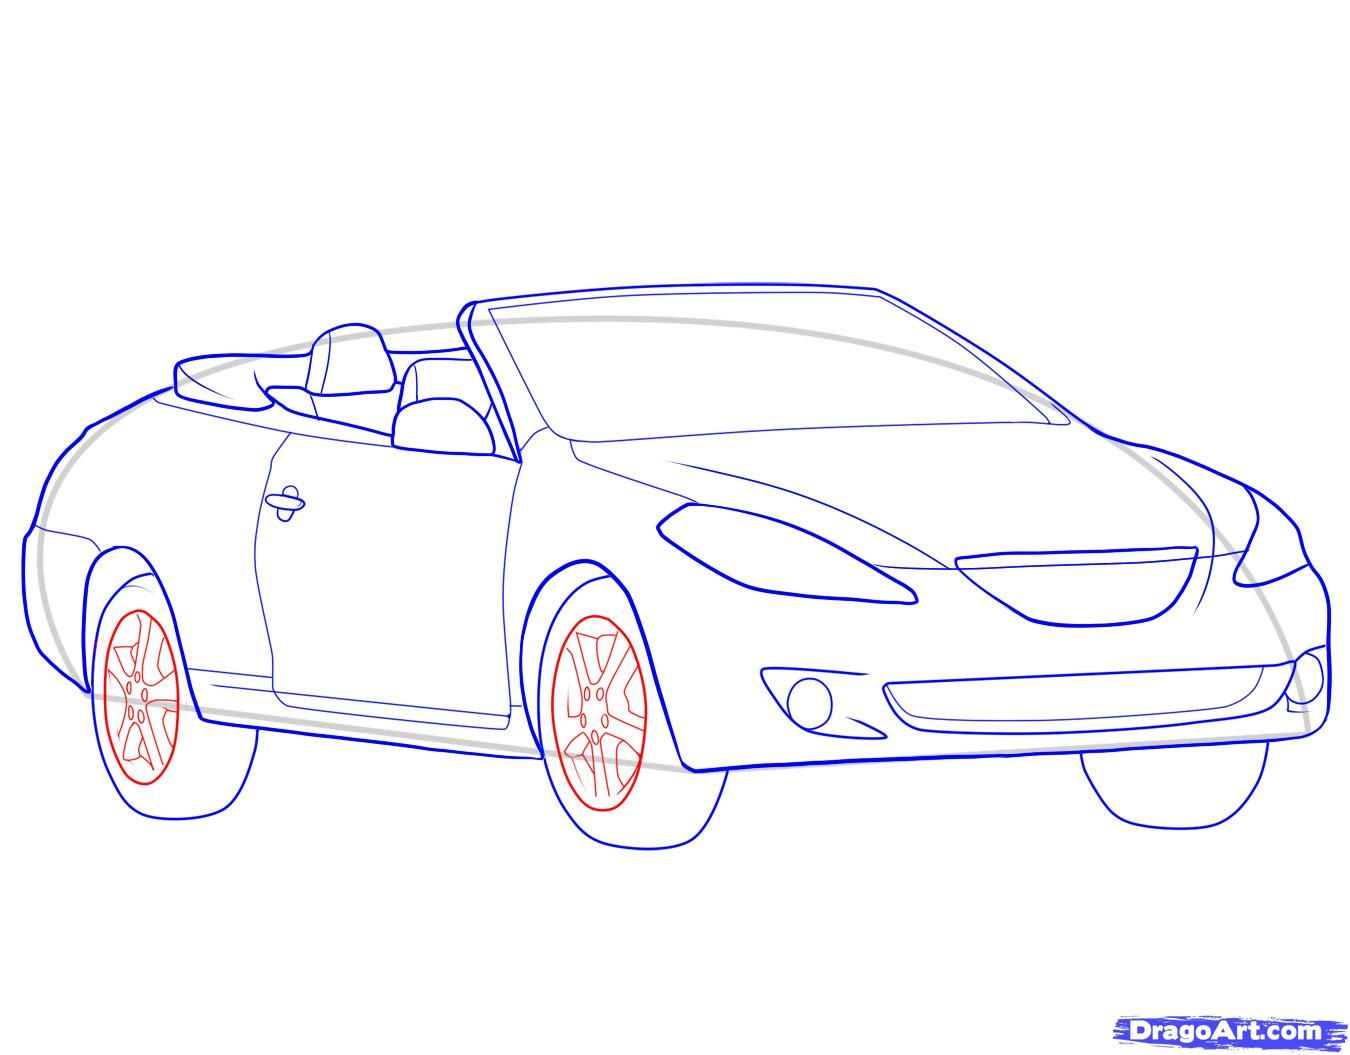 How to draw the Camaro car step by step 9